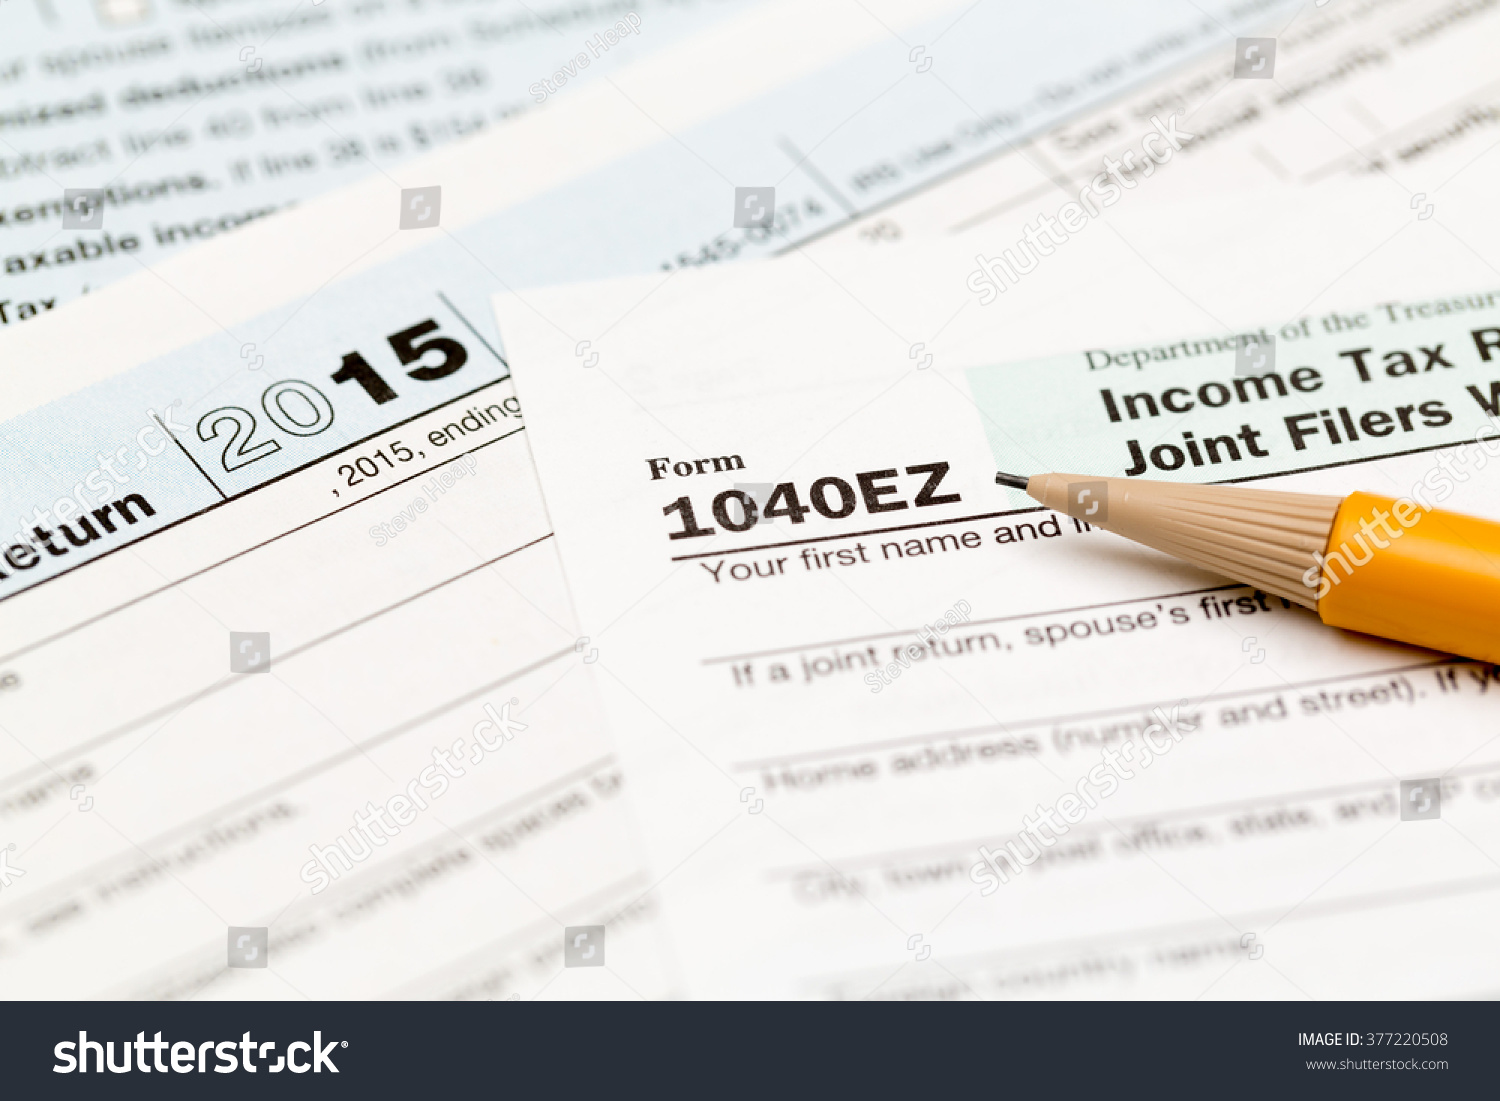 Usa irs tax form 1040ez year stock photo 377220508 shutterstock usa irs tax form 1040ez for year 2015 with pencil and taken from above falaconquin